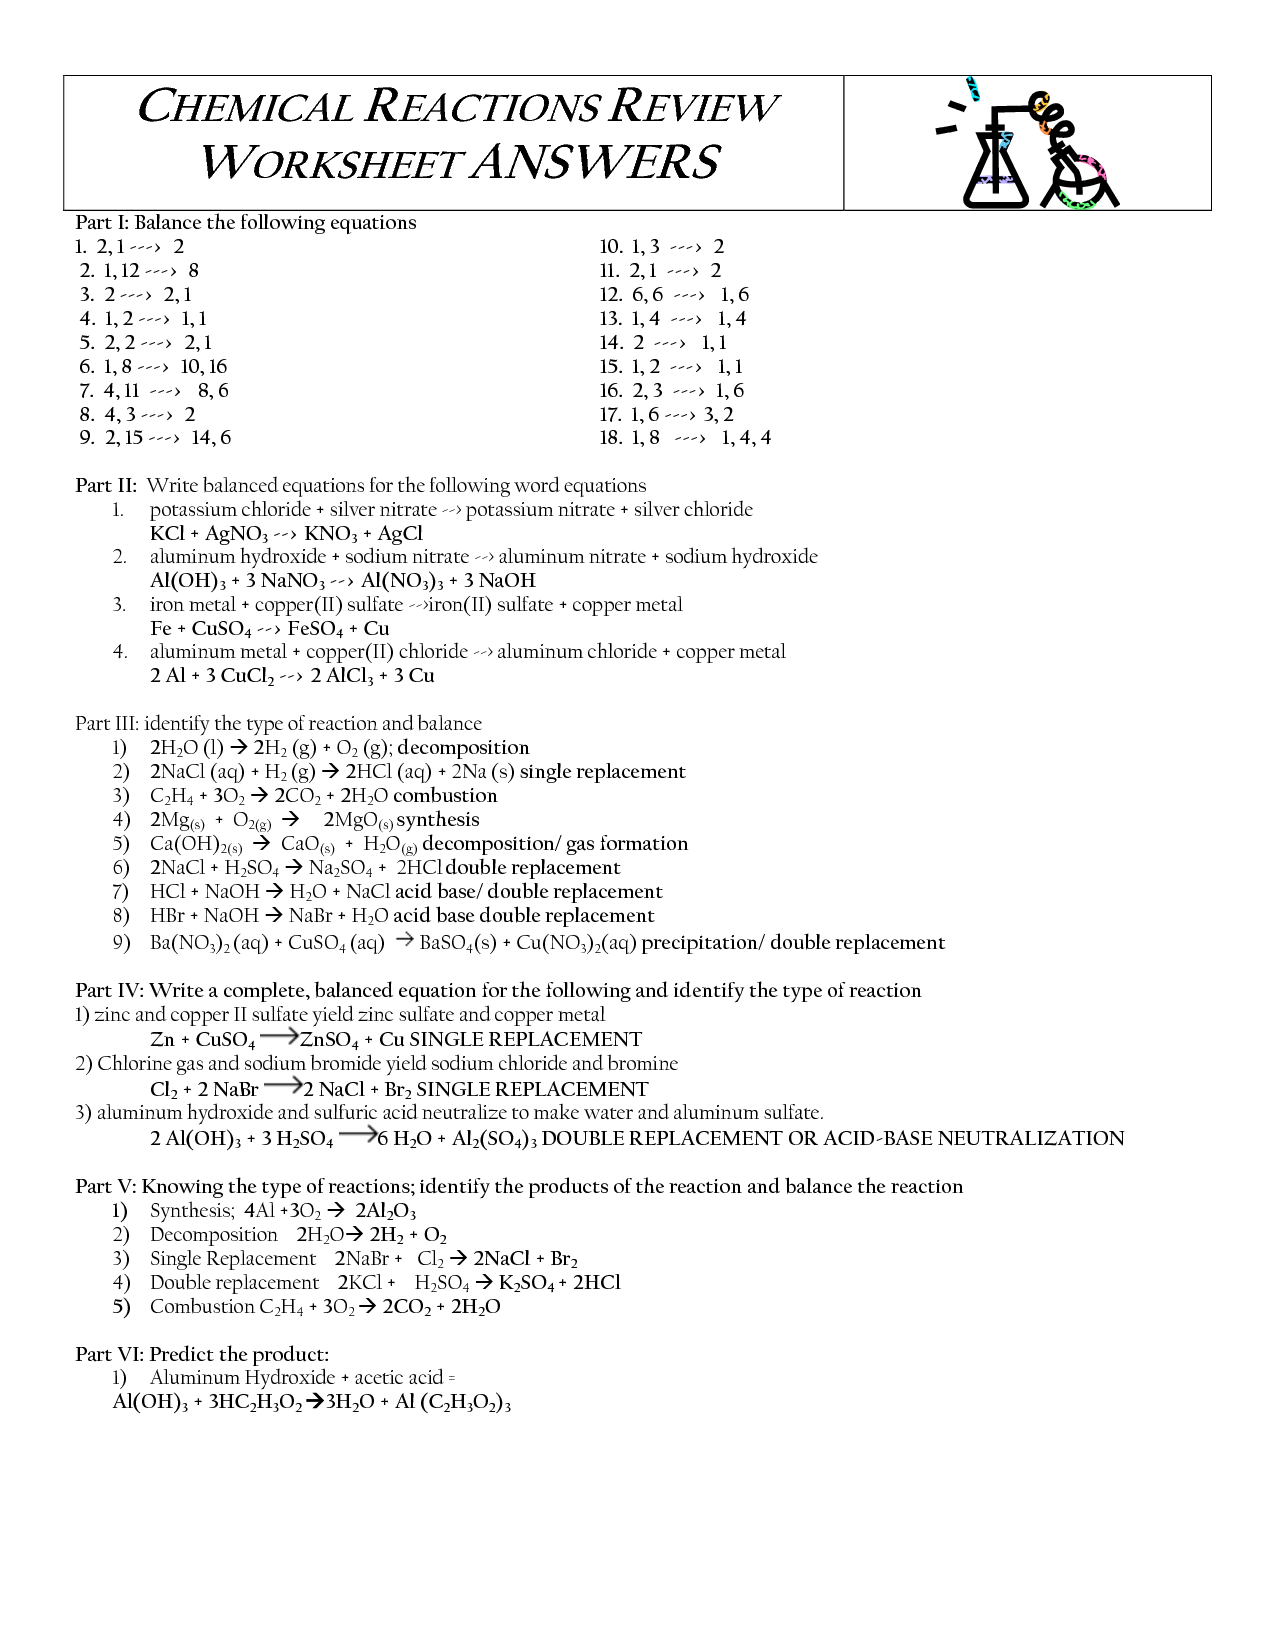 16 Best Images of Types Chemical Reactions Worksheets ...